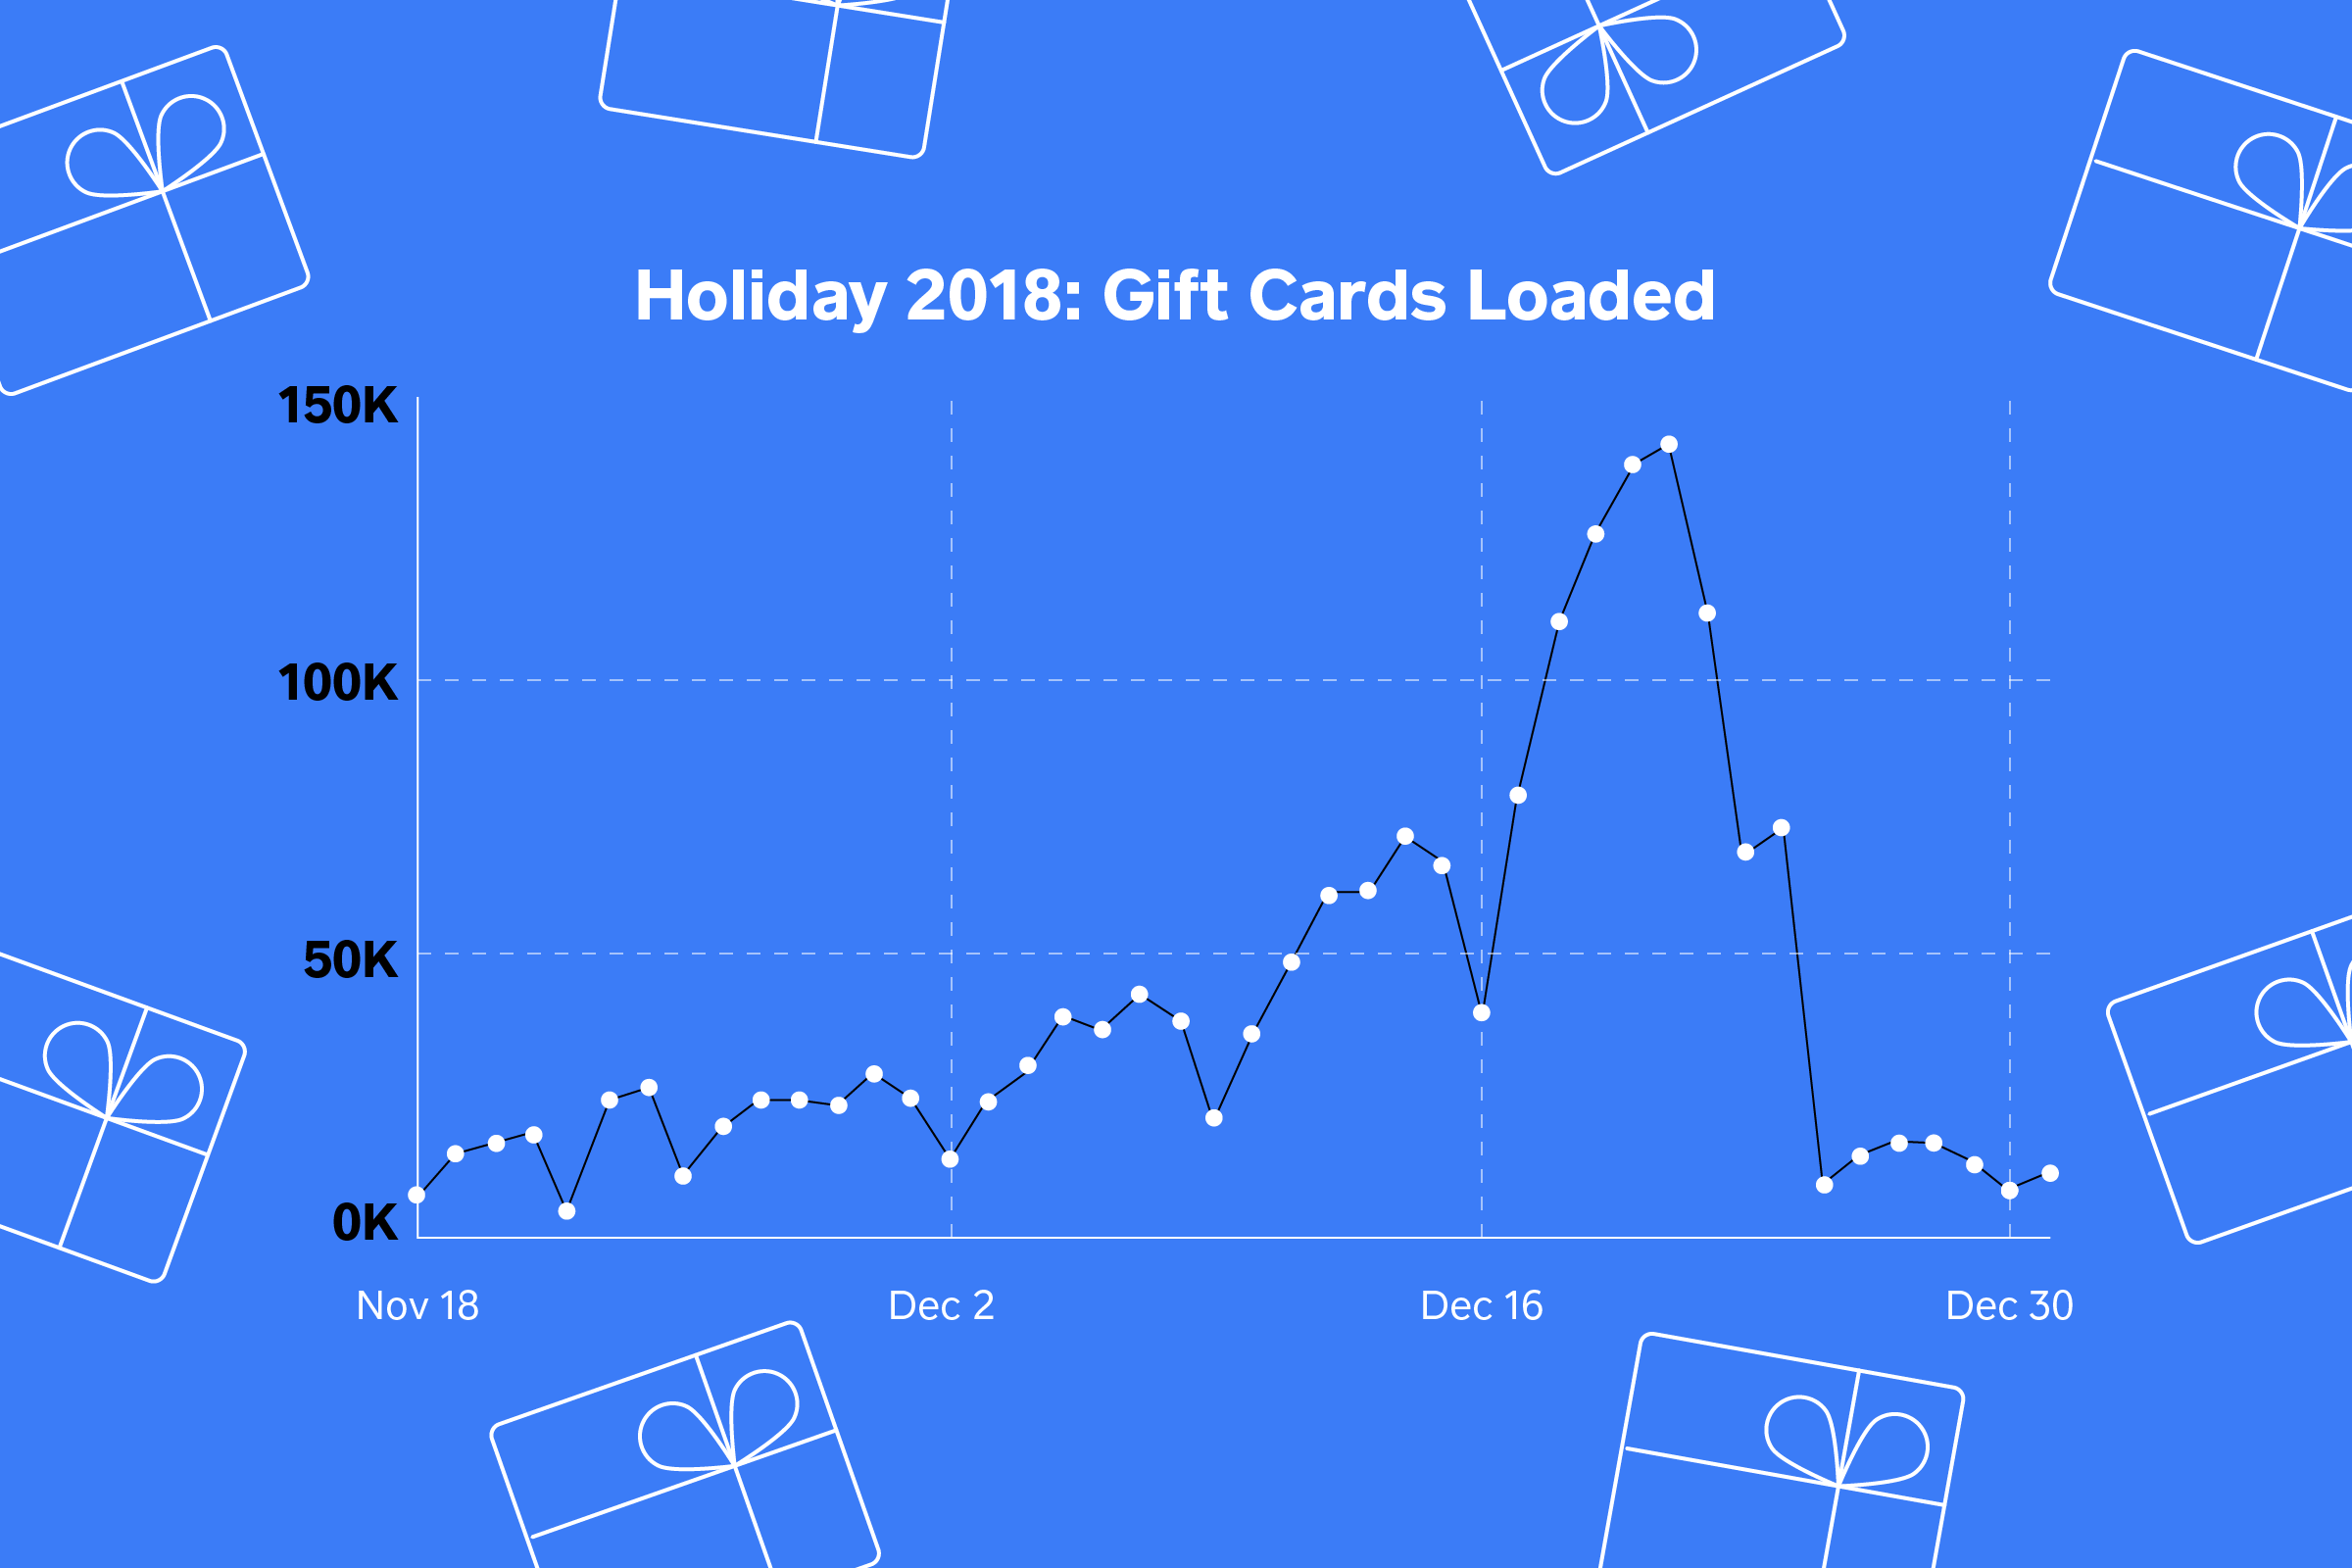 Gift card sales graph